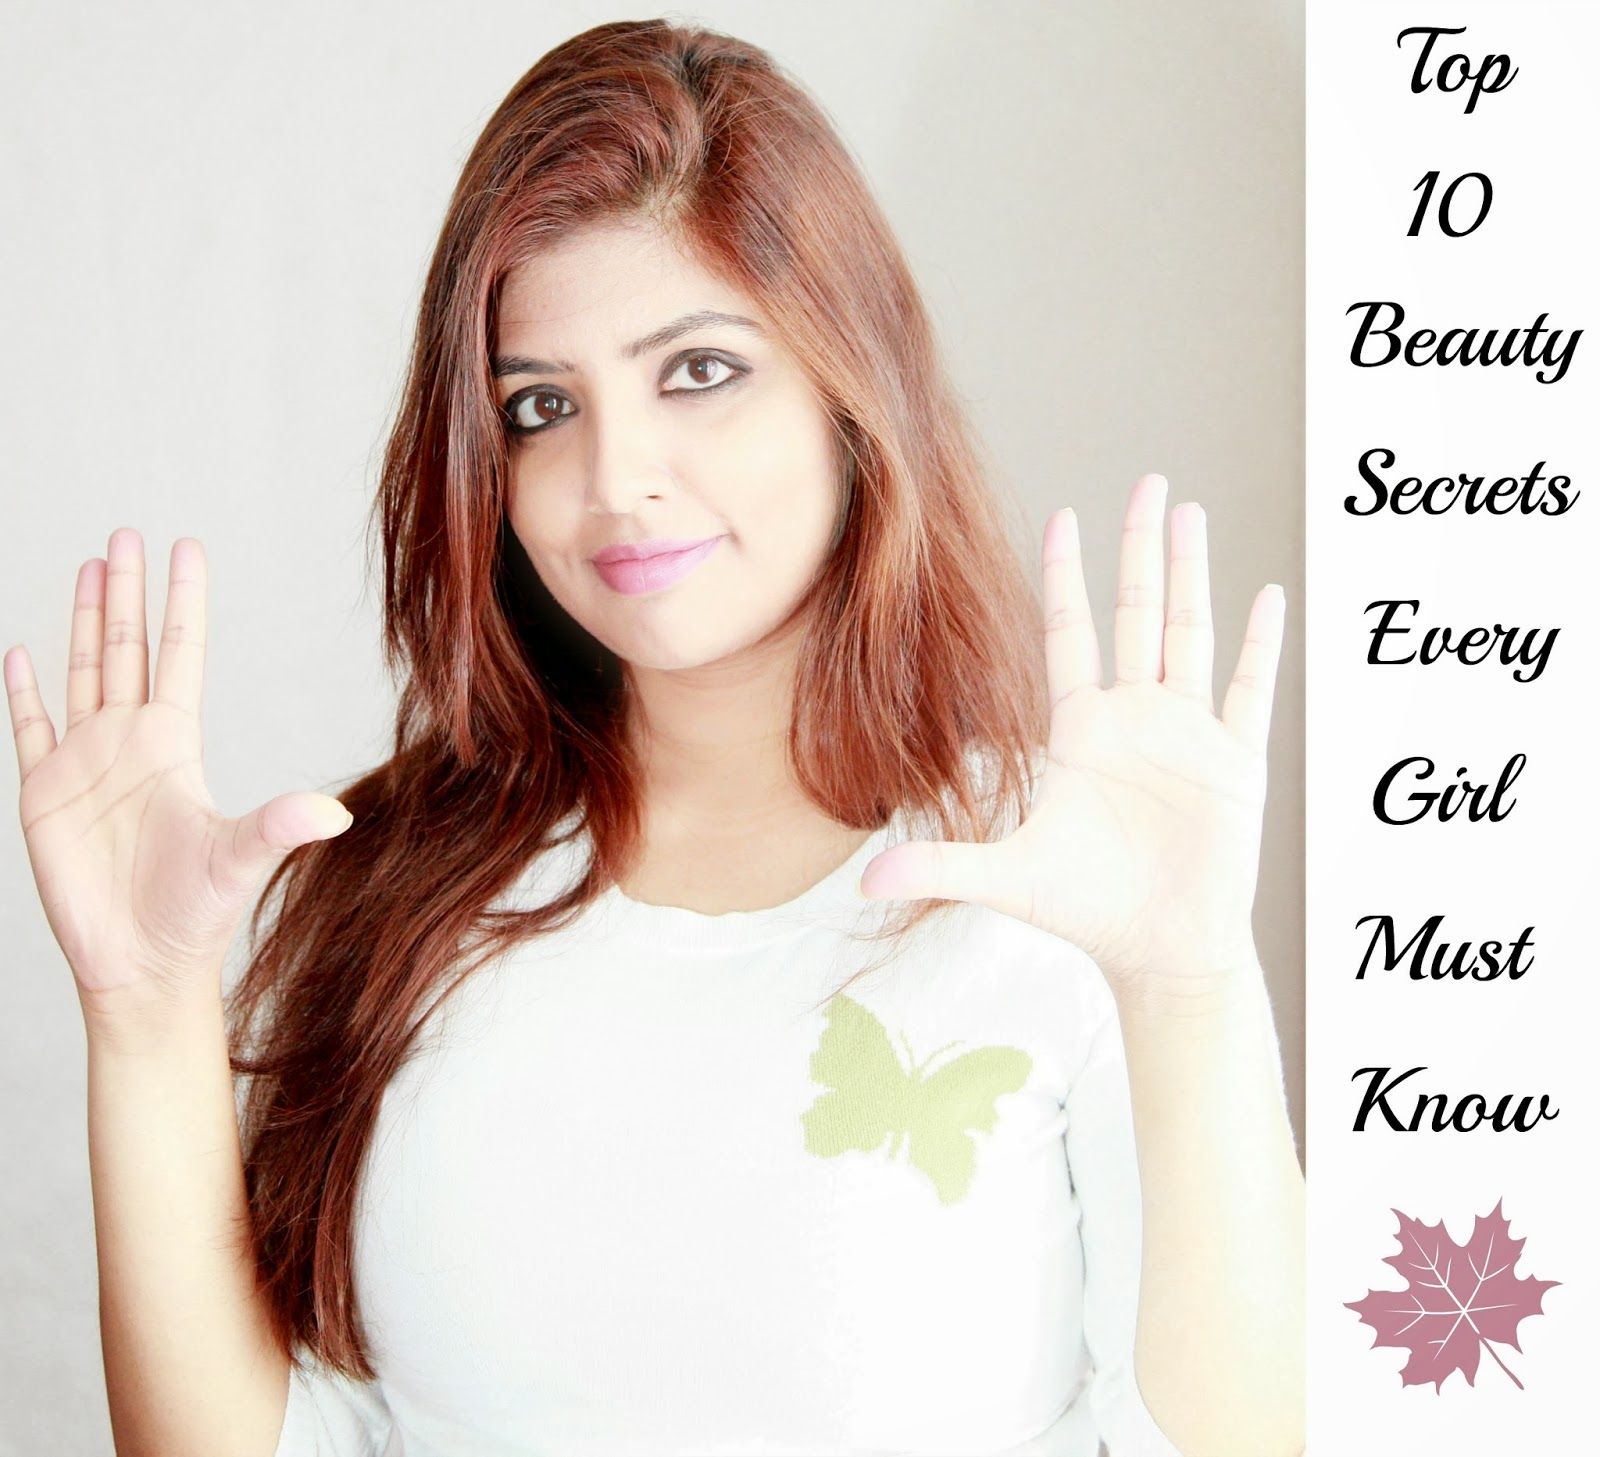 Top 10 Beauty Secrets Every Girl Must Know